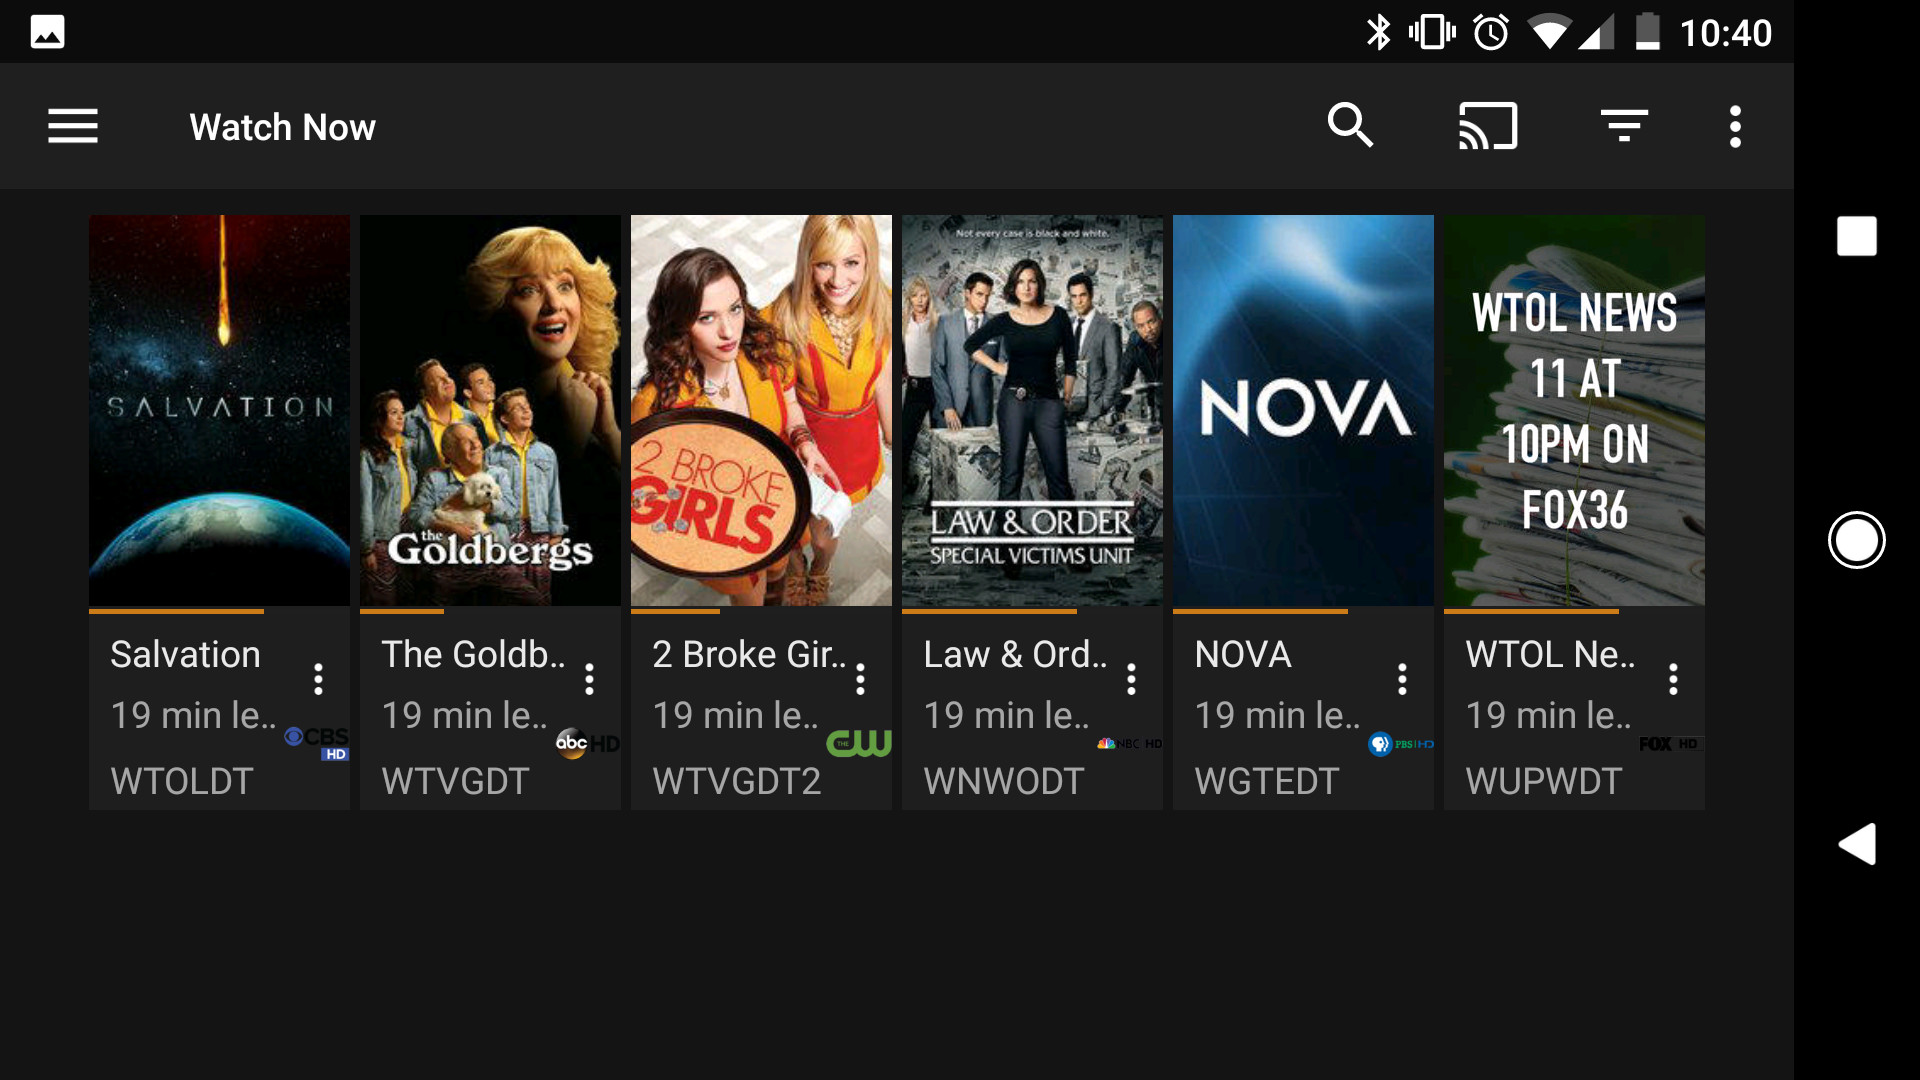 Plex Live TV and DVR Out of Beta